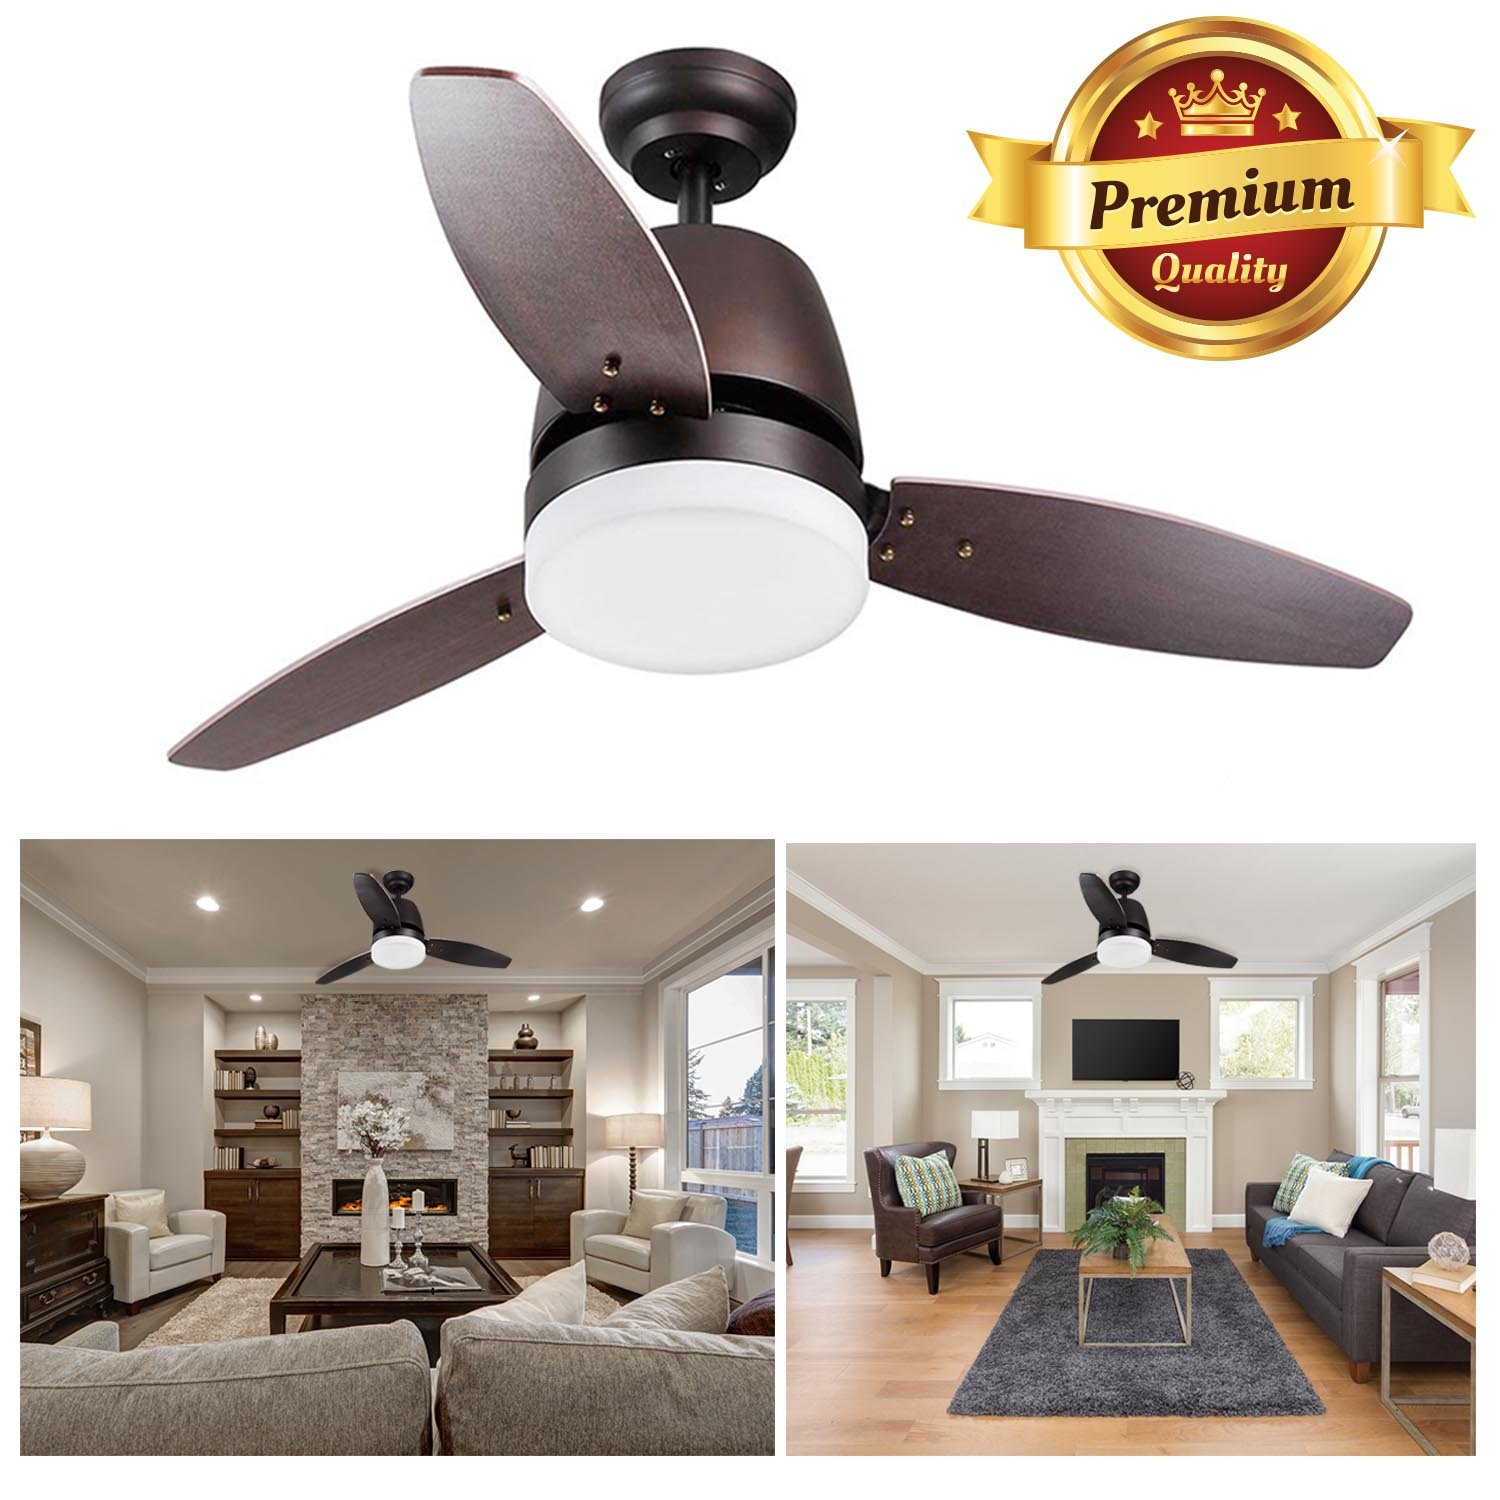 """GC Global Direct 42"""" Dimmable Ceiling Fan with Light & Remote Control Opt (3 Blade Bronze)"""